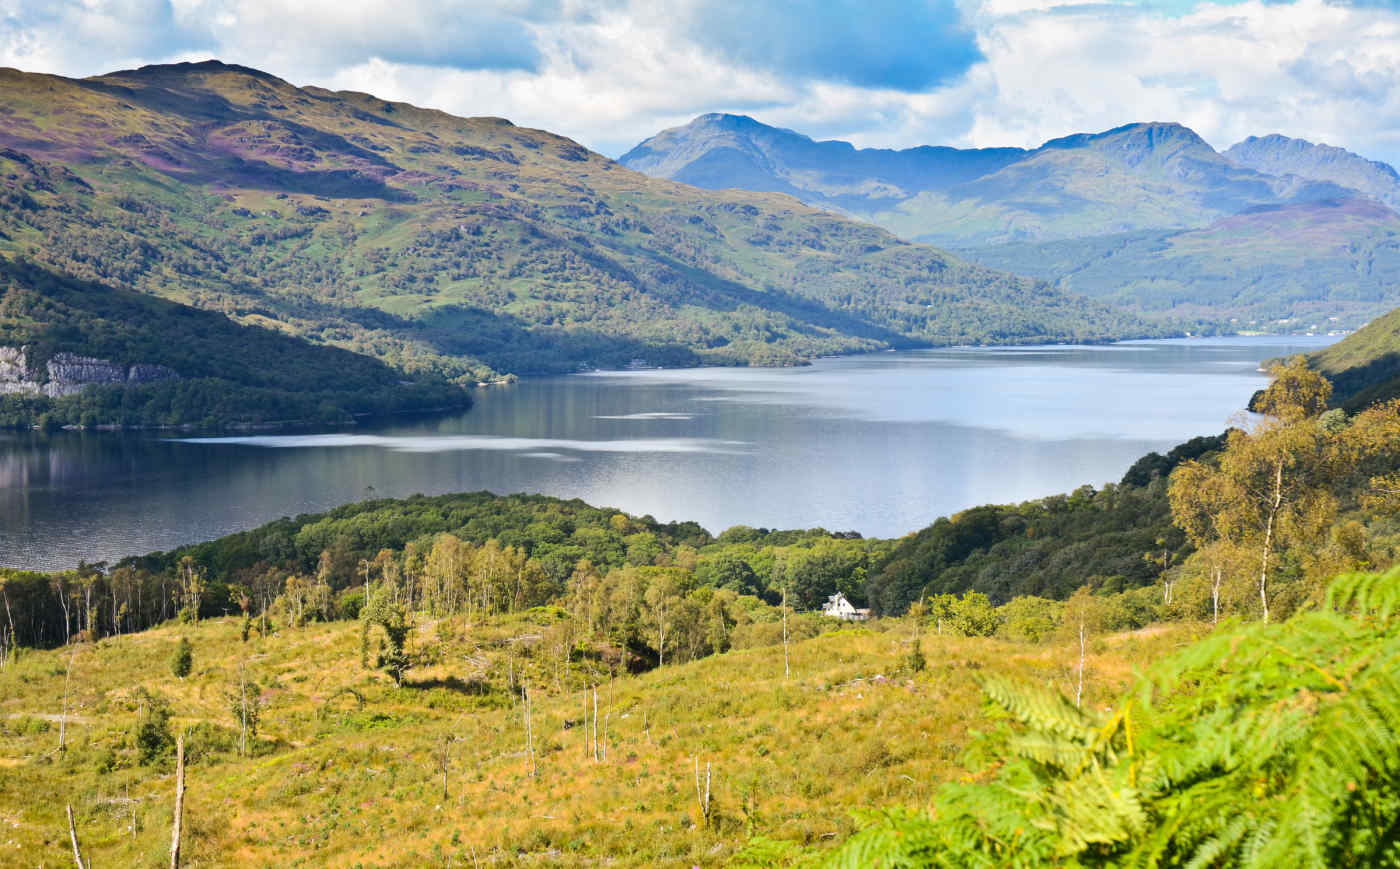 Loch Lomond & The Trossachs National Park, Scotland